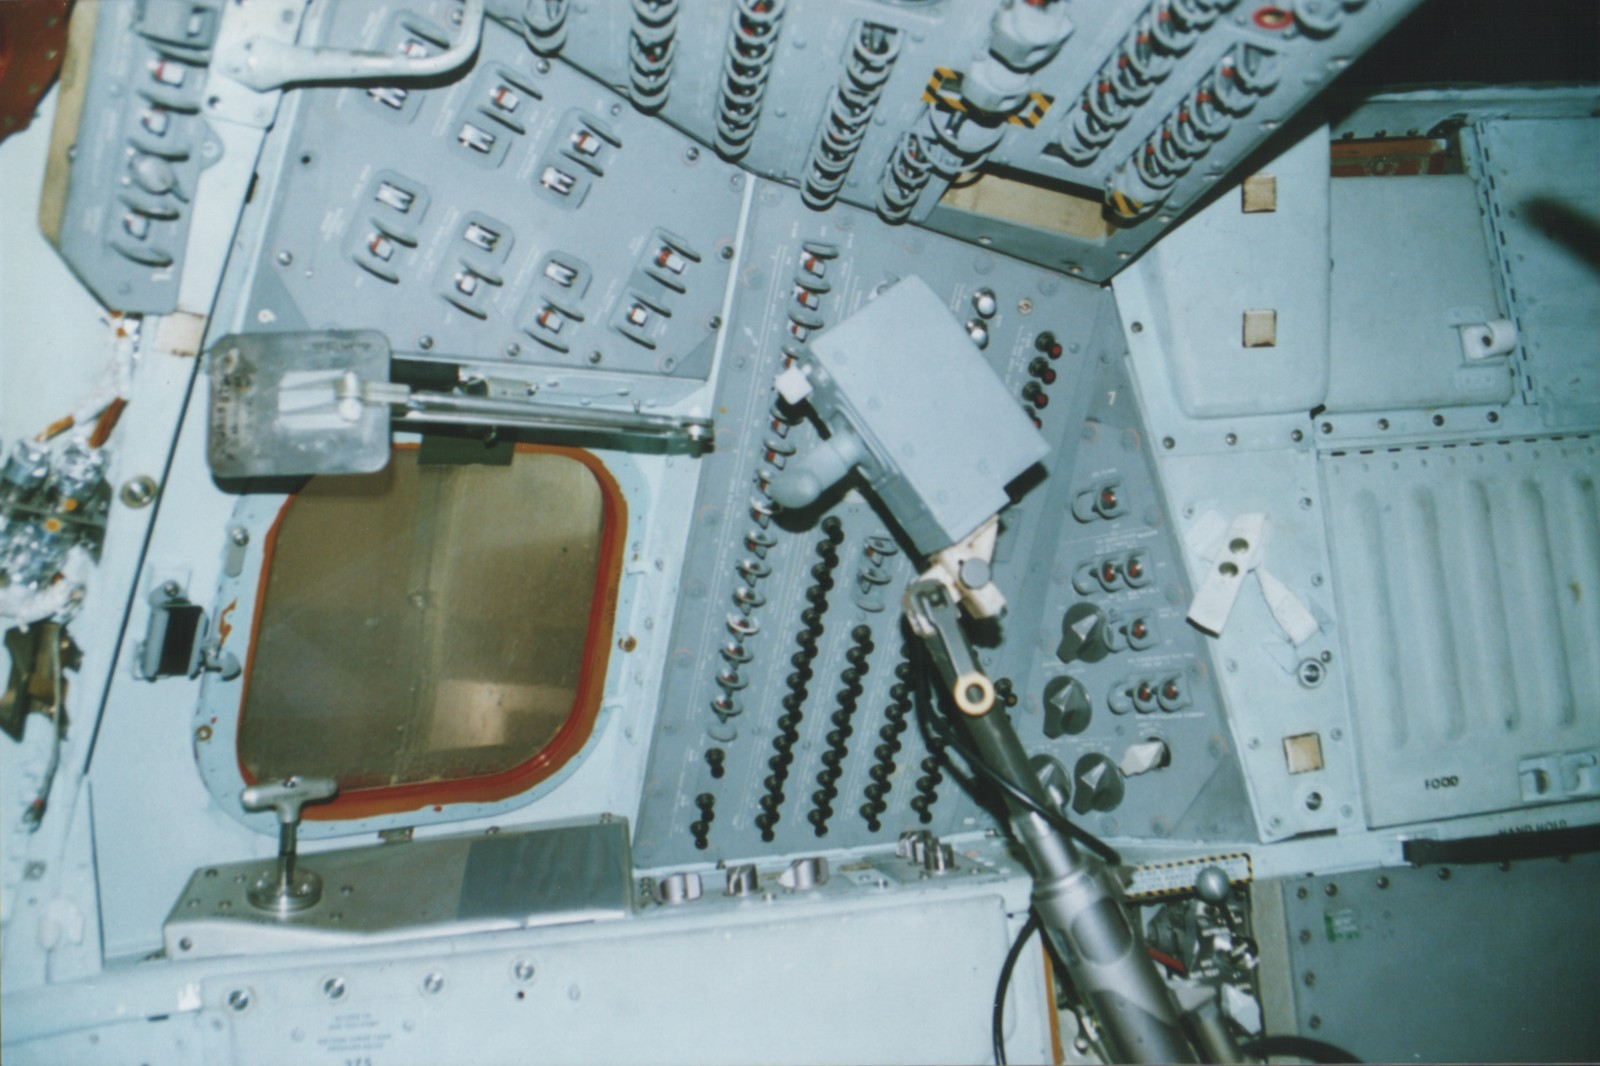 apollo capsule control panel - photo #13